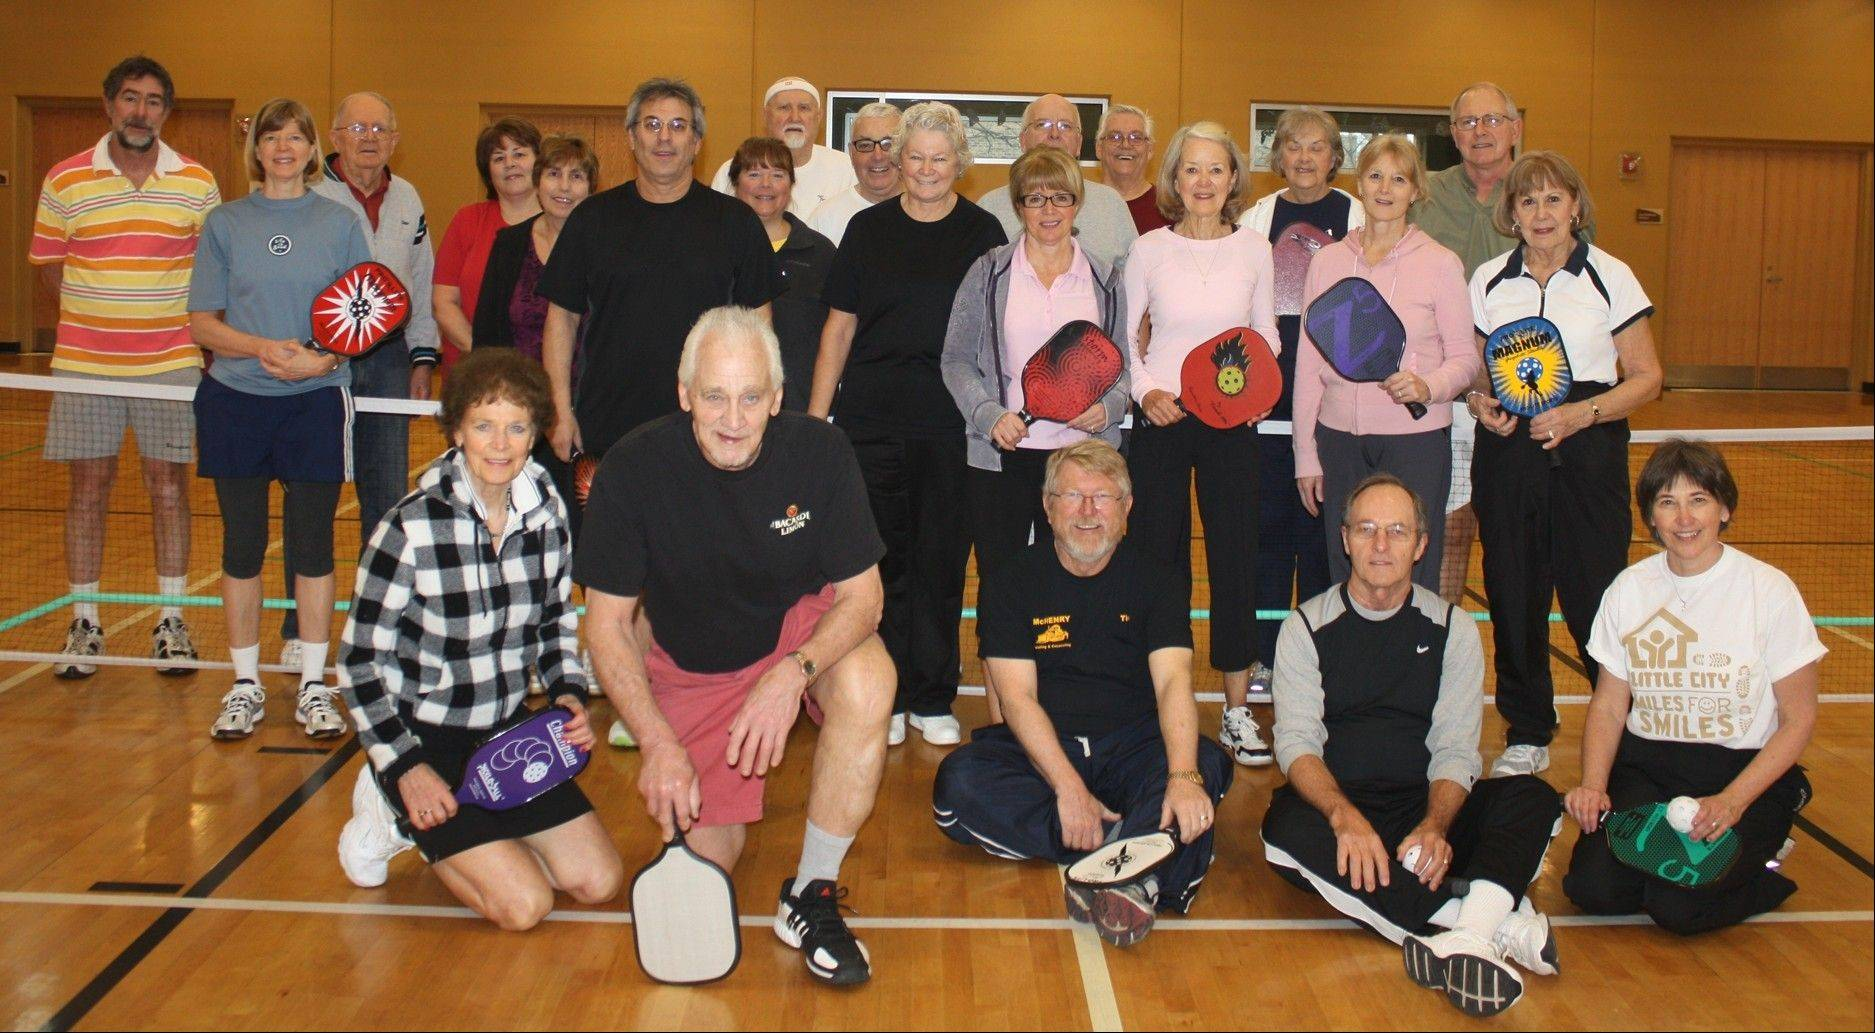 The Palatine Park District has a 50+ indoor Pickleball group, and a new outdoor group. Beginning Nov. 20, it will start an adult Pickleball group for ages 18 and older at Falcon Park Recreation Center. For information, visit palatineparks.org.